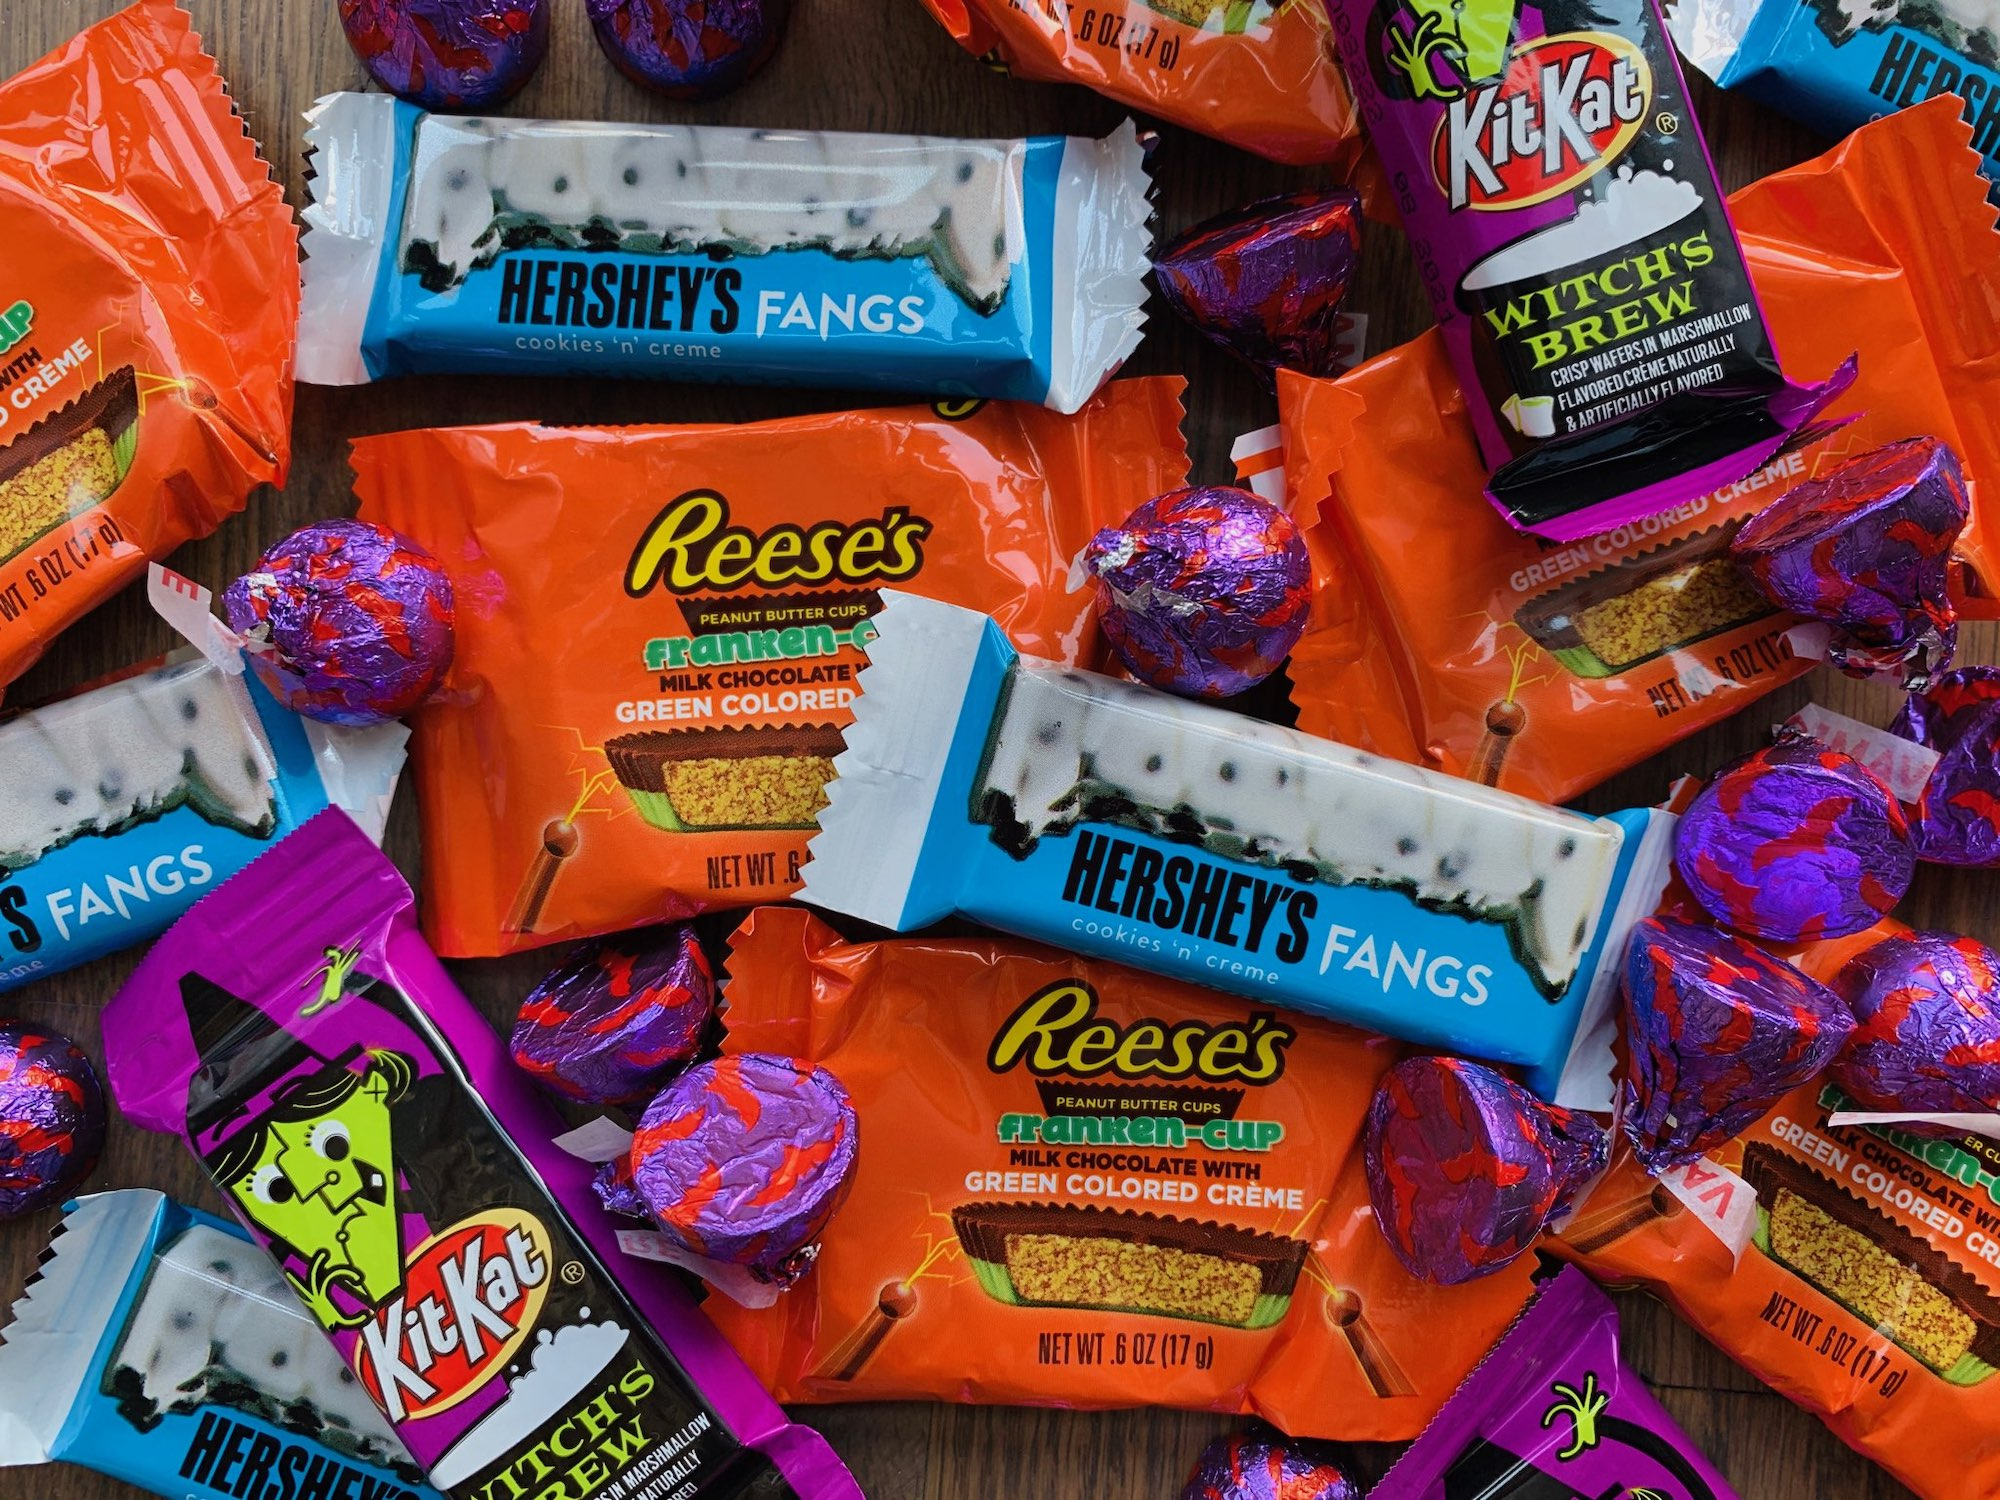 New For Halloween 2020 Halloween Candy 2020: Hershey's Drops 4 New Chocolates for the Holiday